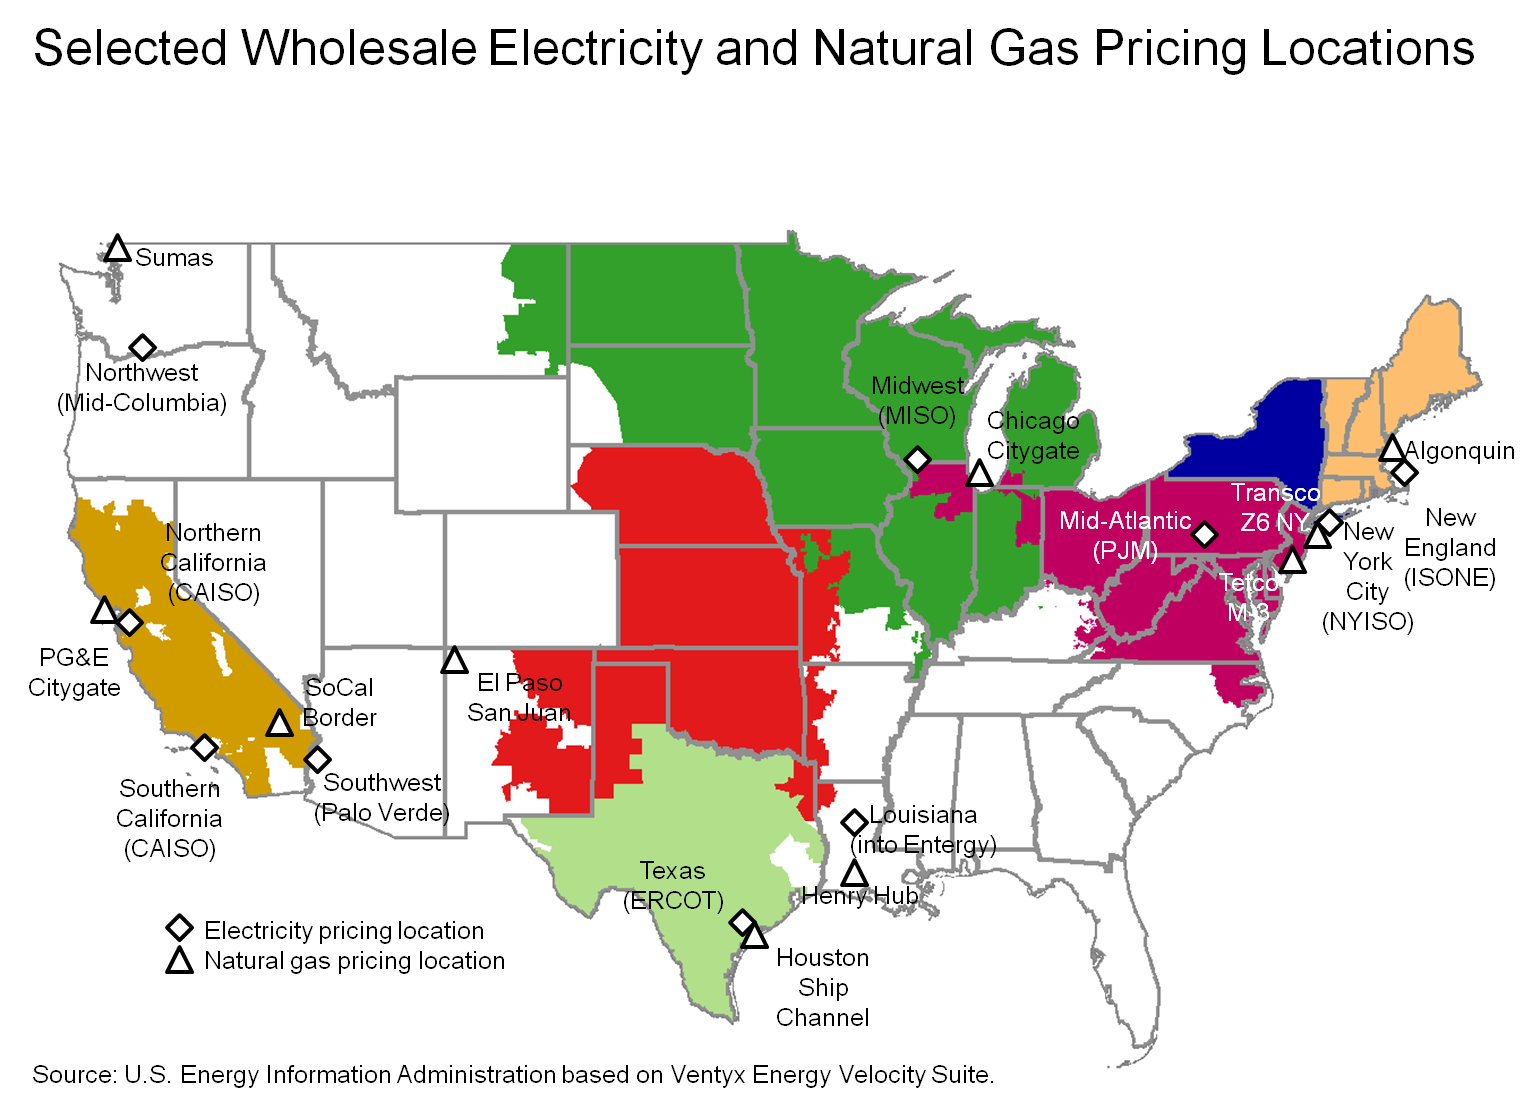 Maps US Energy Information Administration EIA - Us gas price map